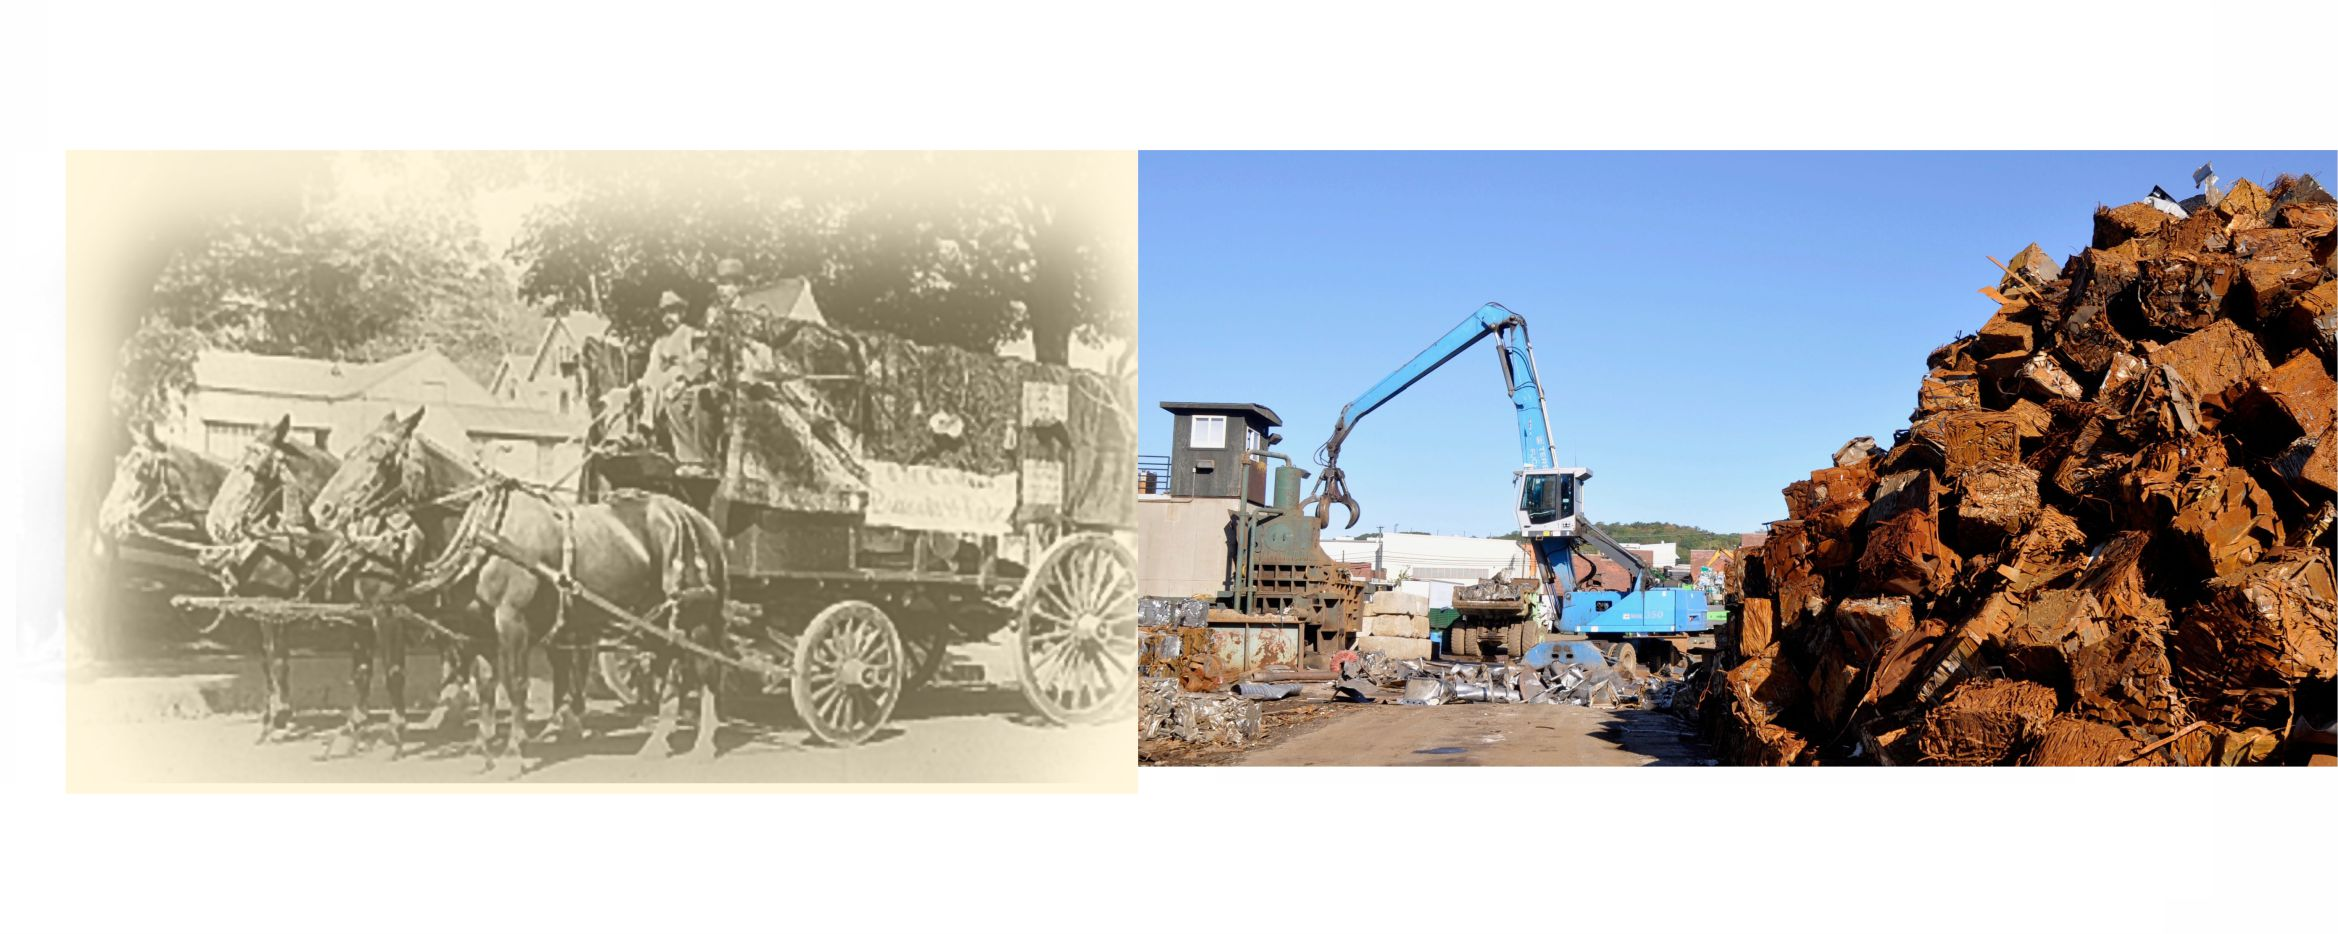 Albert Bros., Inc. – 125 Years in Scrap Metal Business Means More Than Loving Metal